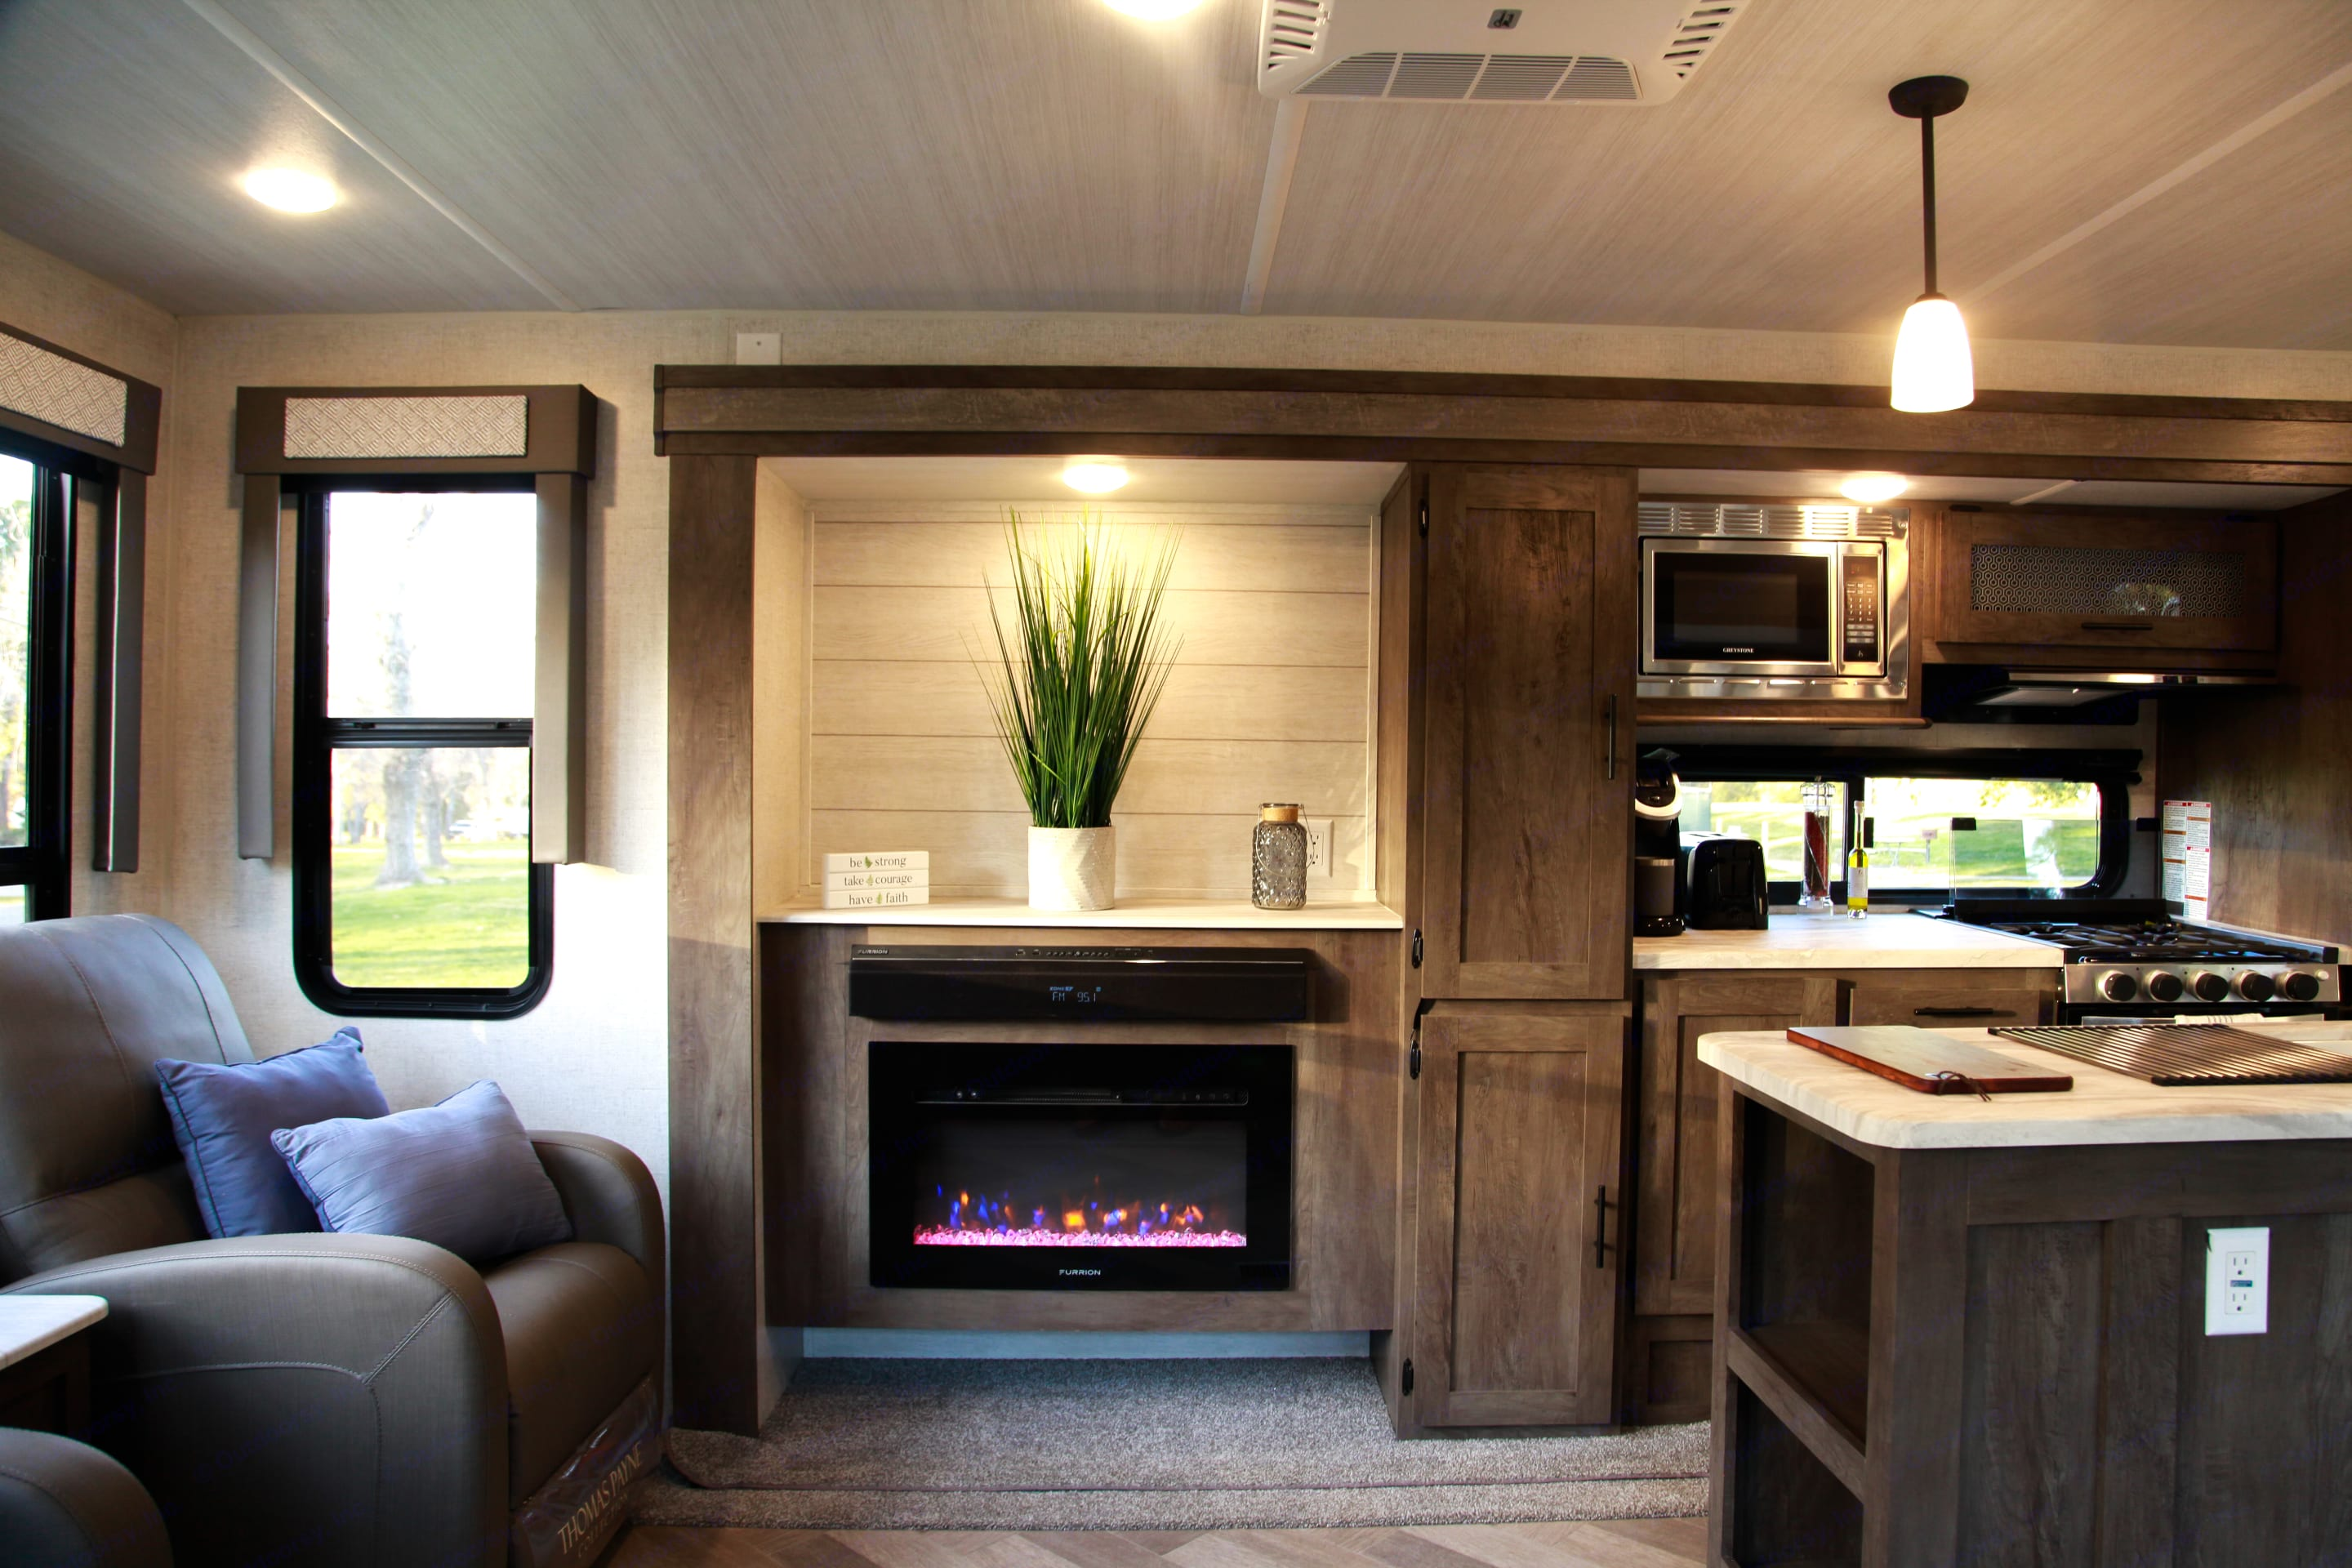 Turn the fireplace and stay cozy. Forest River Wildwood 2021